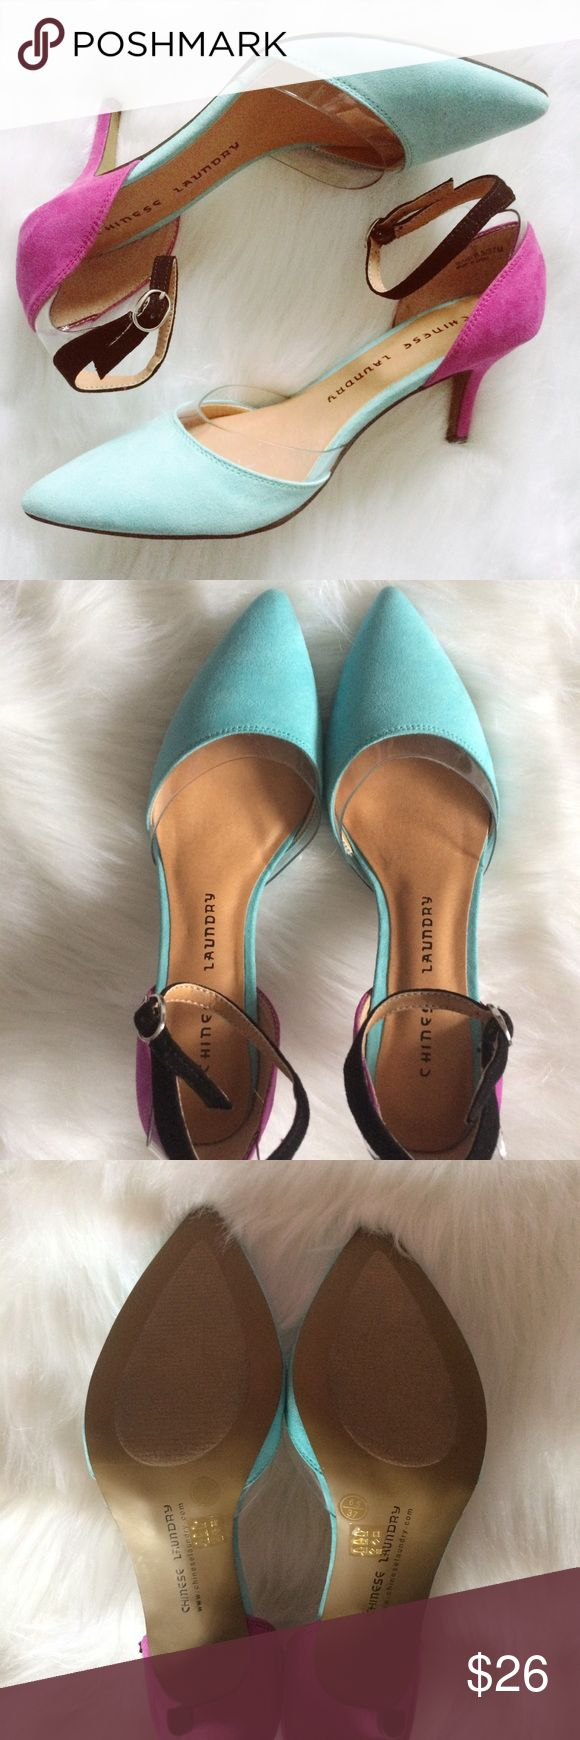 Chinese Laundry Pointed Toe Kitten Heels Stunning turquoise and violet pointed toe kitten heels by Chinese Laundry. The gorgeous design has a clear lining on the front and back with a sleek black strap. Size 6.5/37M. Never worn but a few marks from try ons in store. There's a mark on the inner side of the left shoe. Please see photo. Not very noticeable because it's not on the outer side of heel. Chinese Laundry Shoes Heels